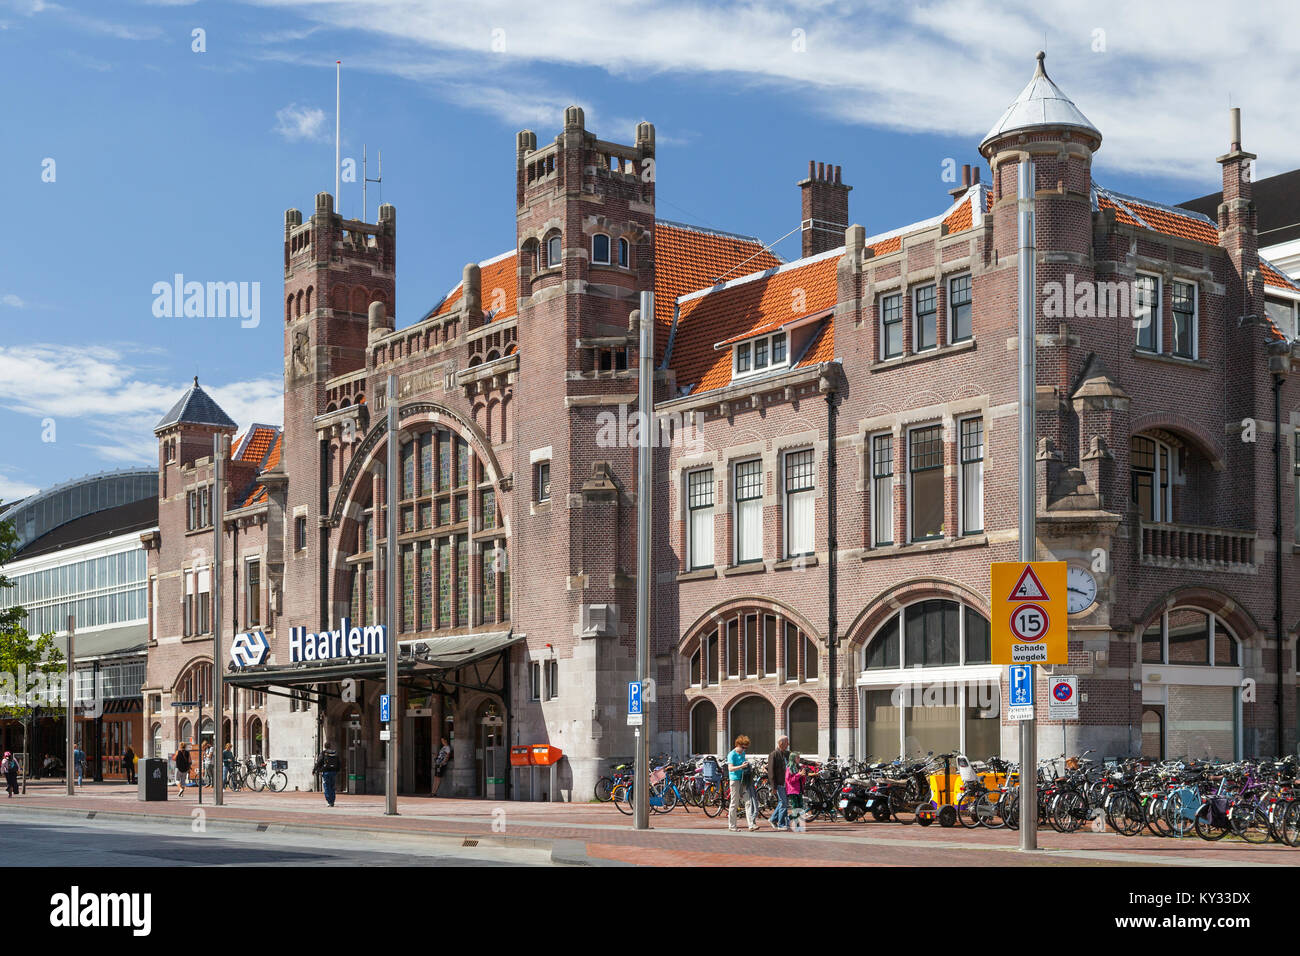 Haarlem railway station, Netherlands. Built in an Art Nouveau style. - Stock Image